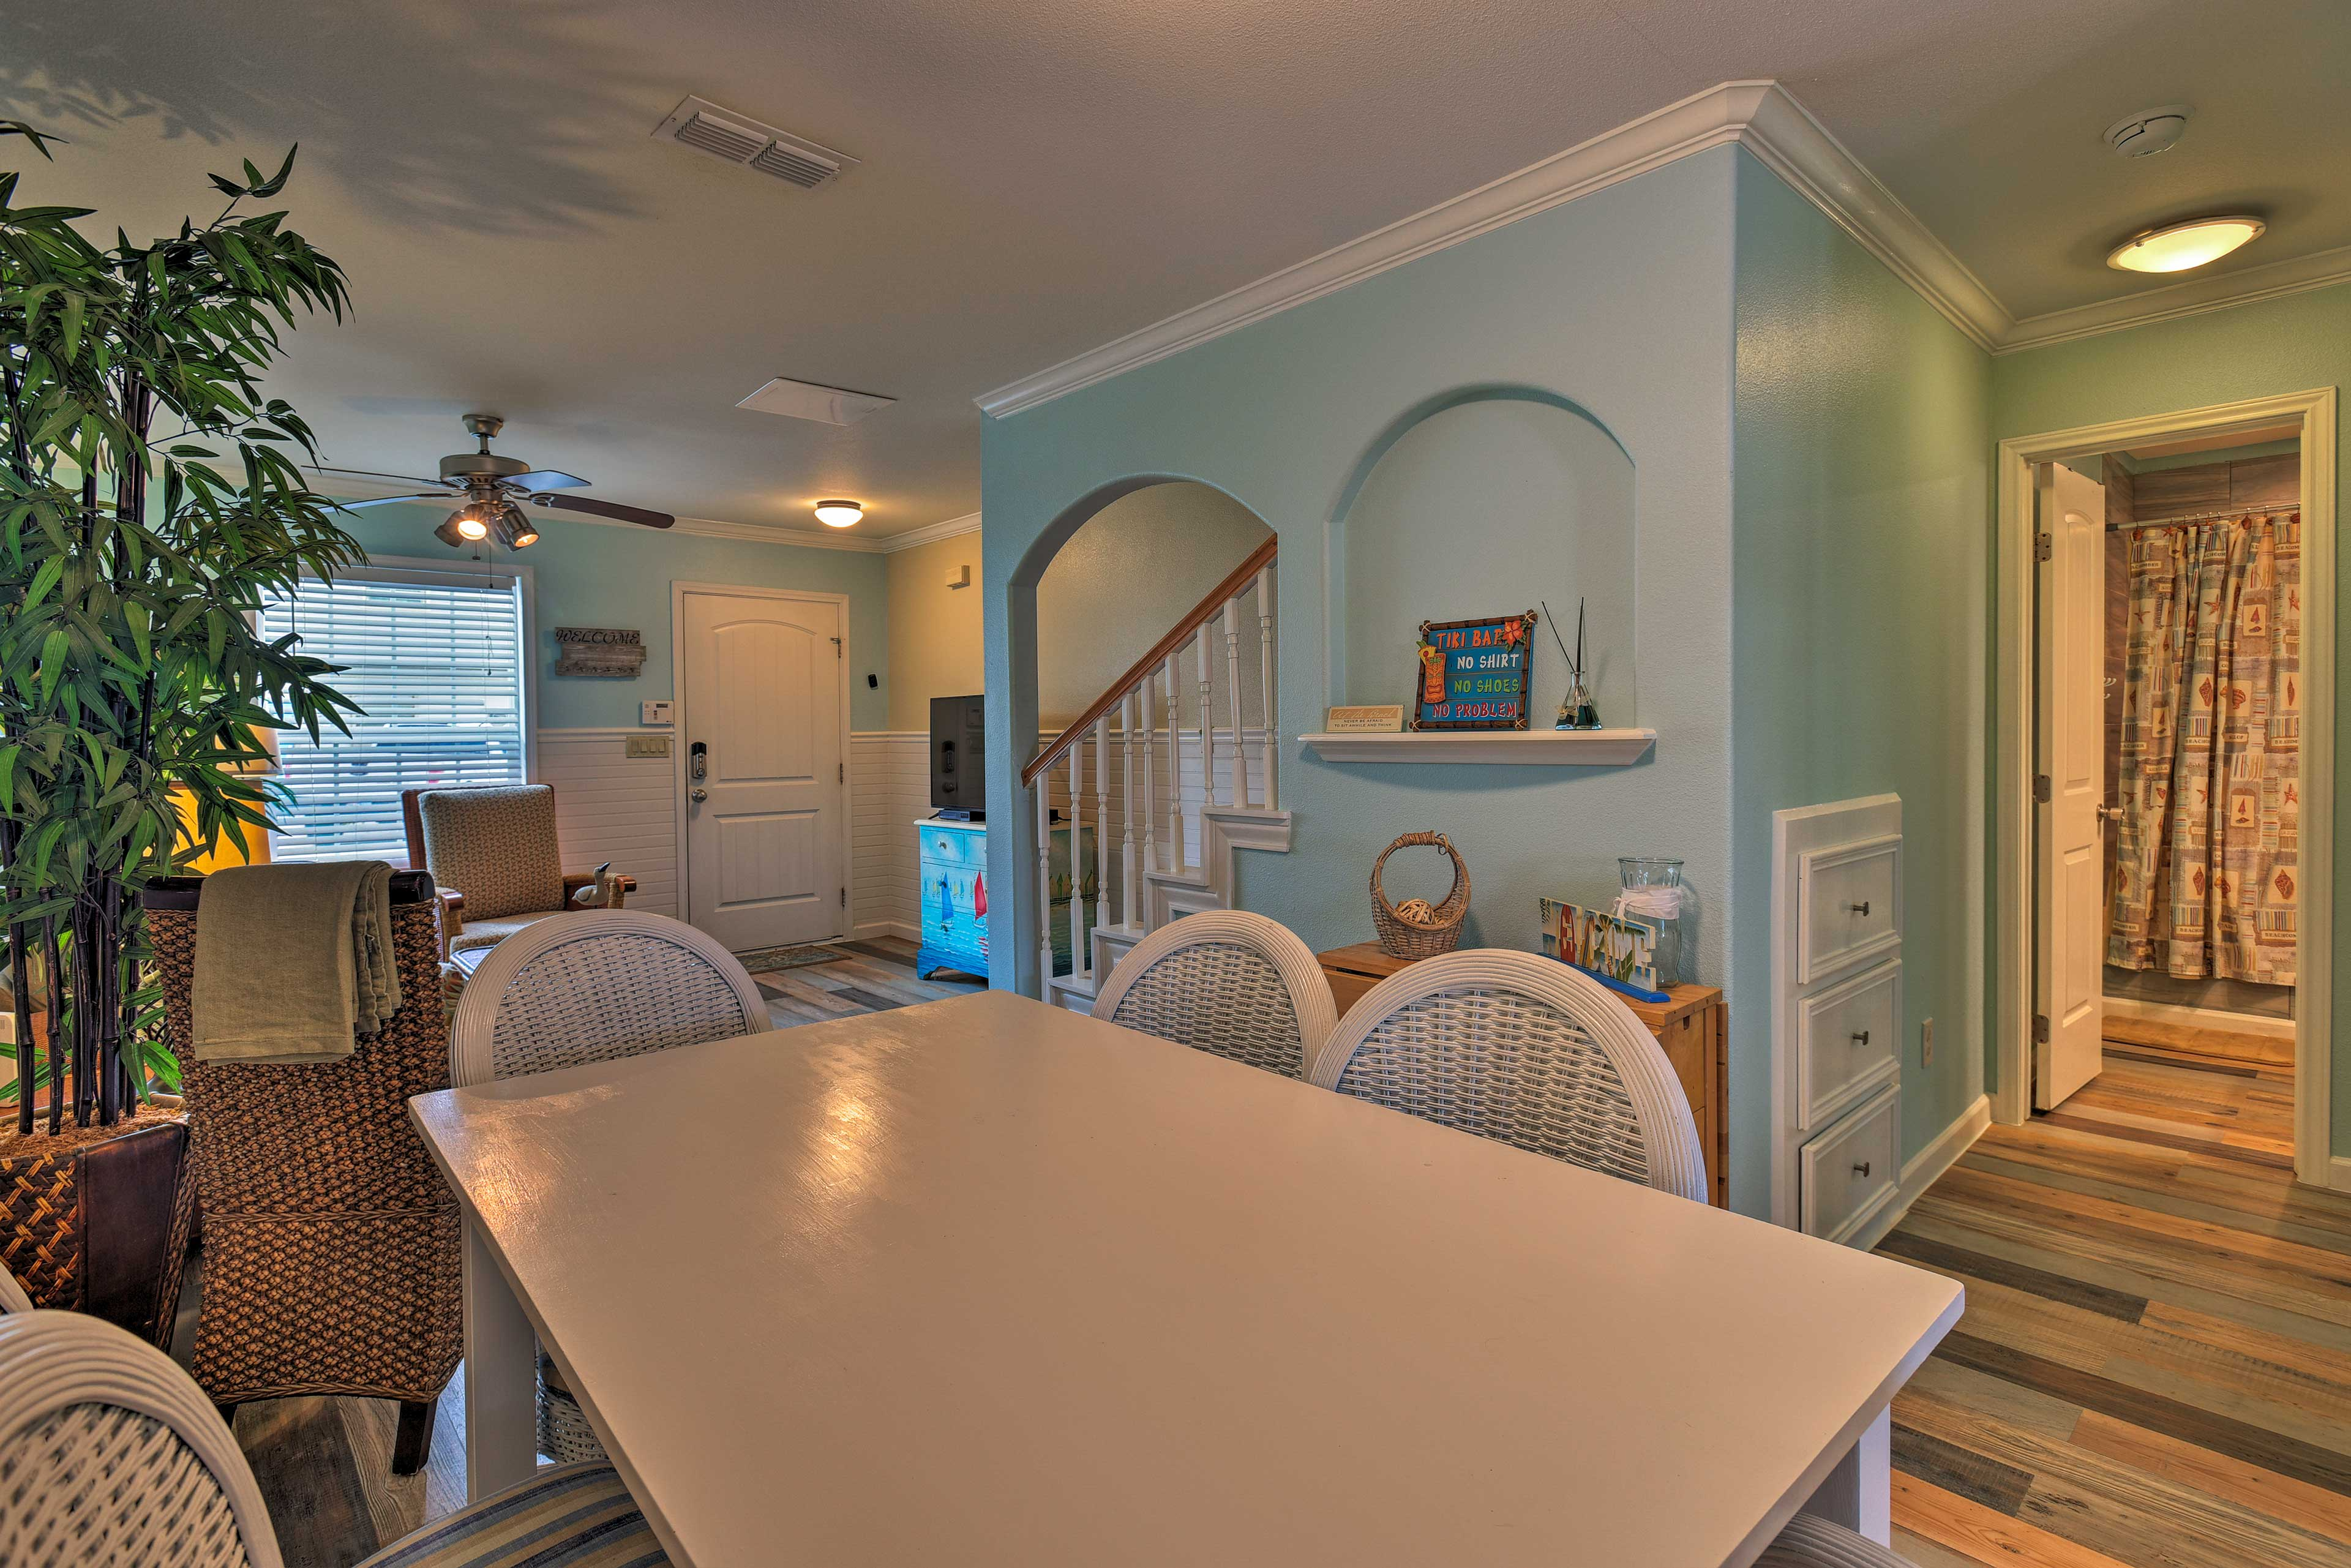 The main level encompasses the living room, dining area and kitchen.